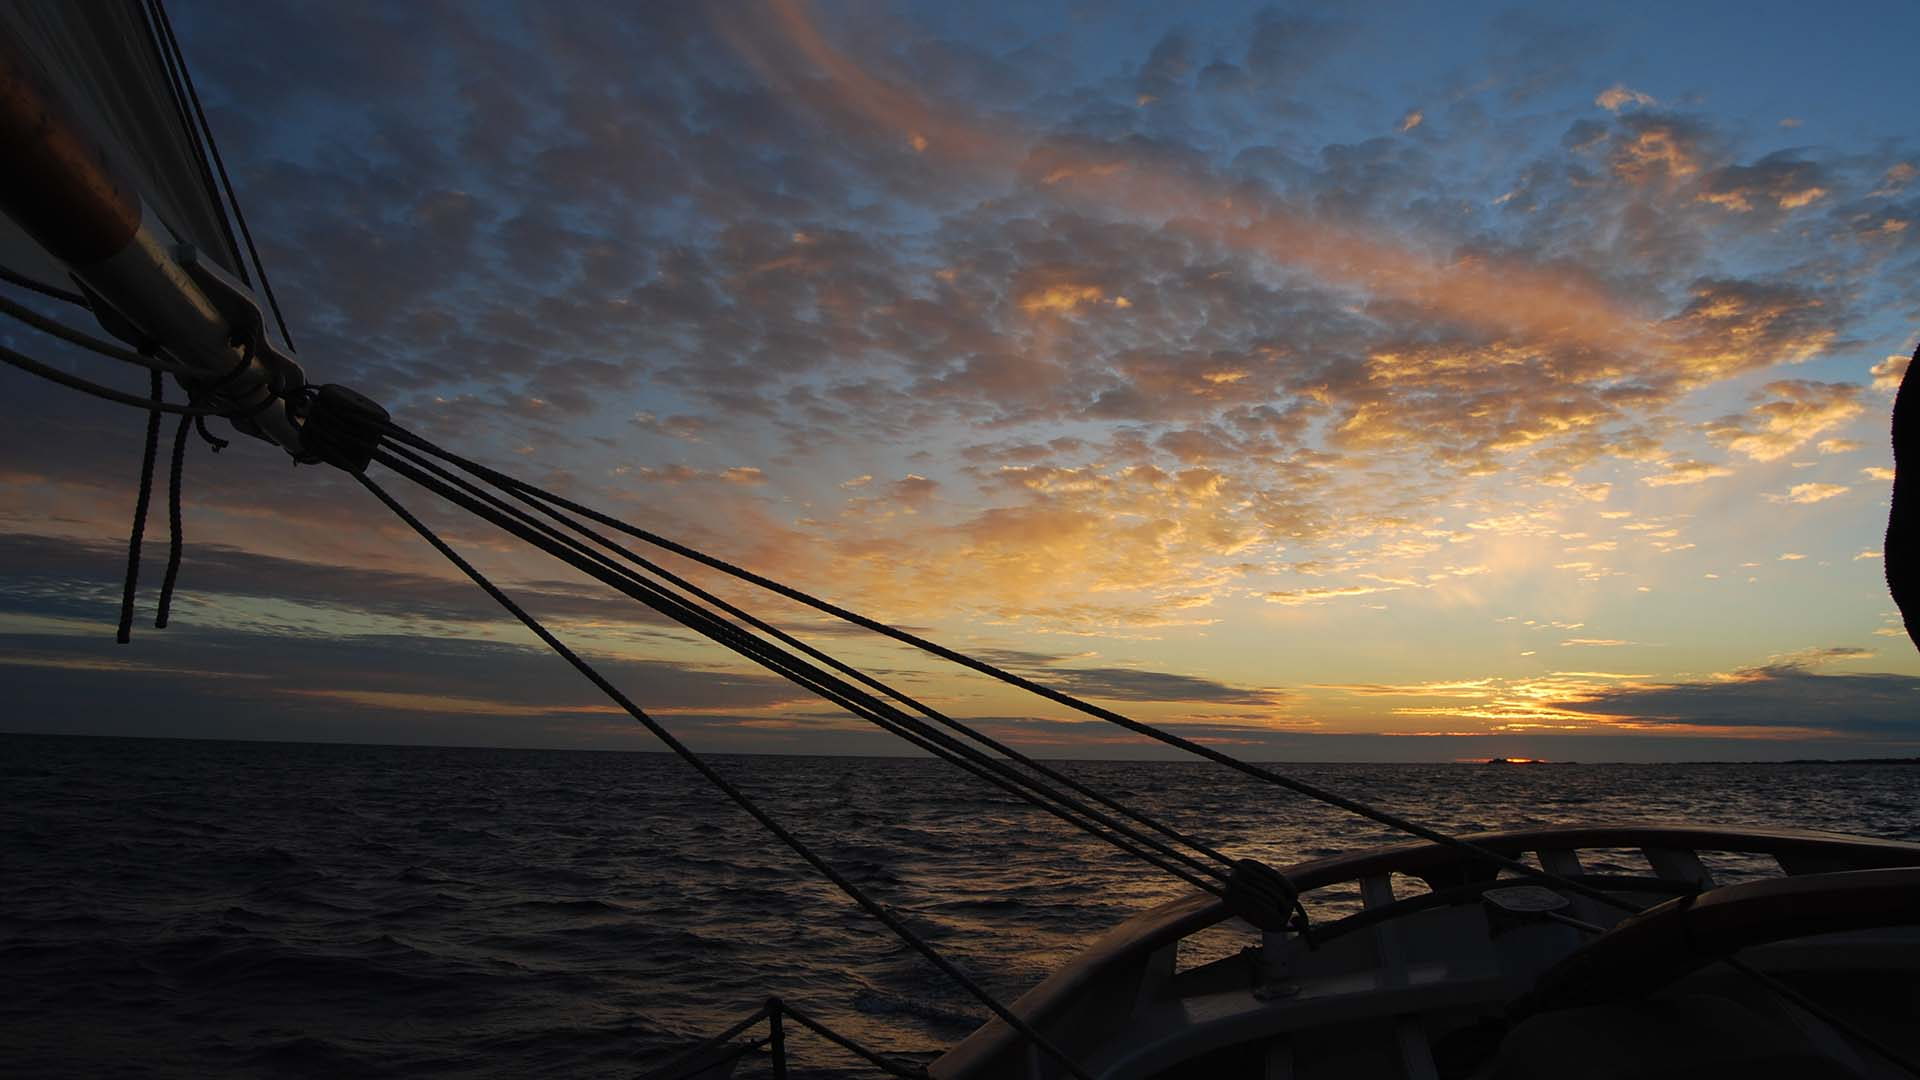 View aft aboard the Amelie Rose at sea at dusk